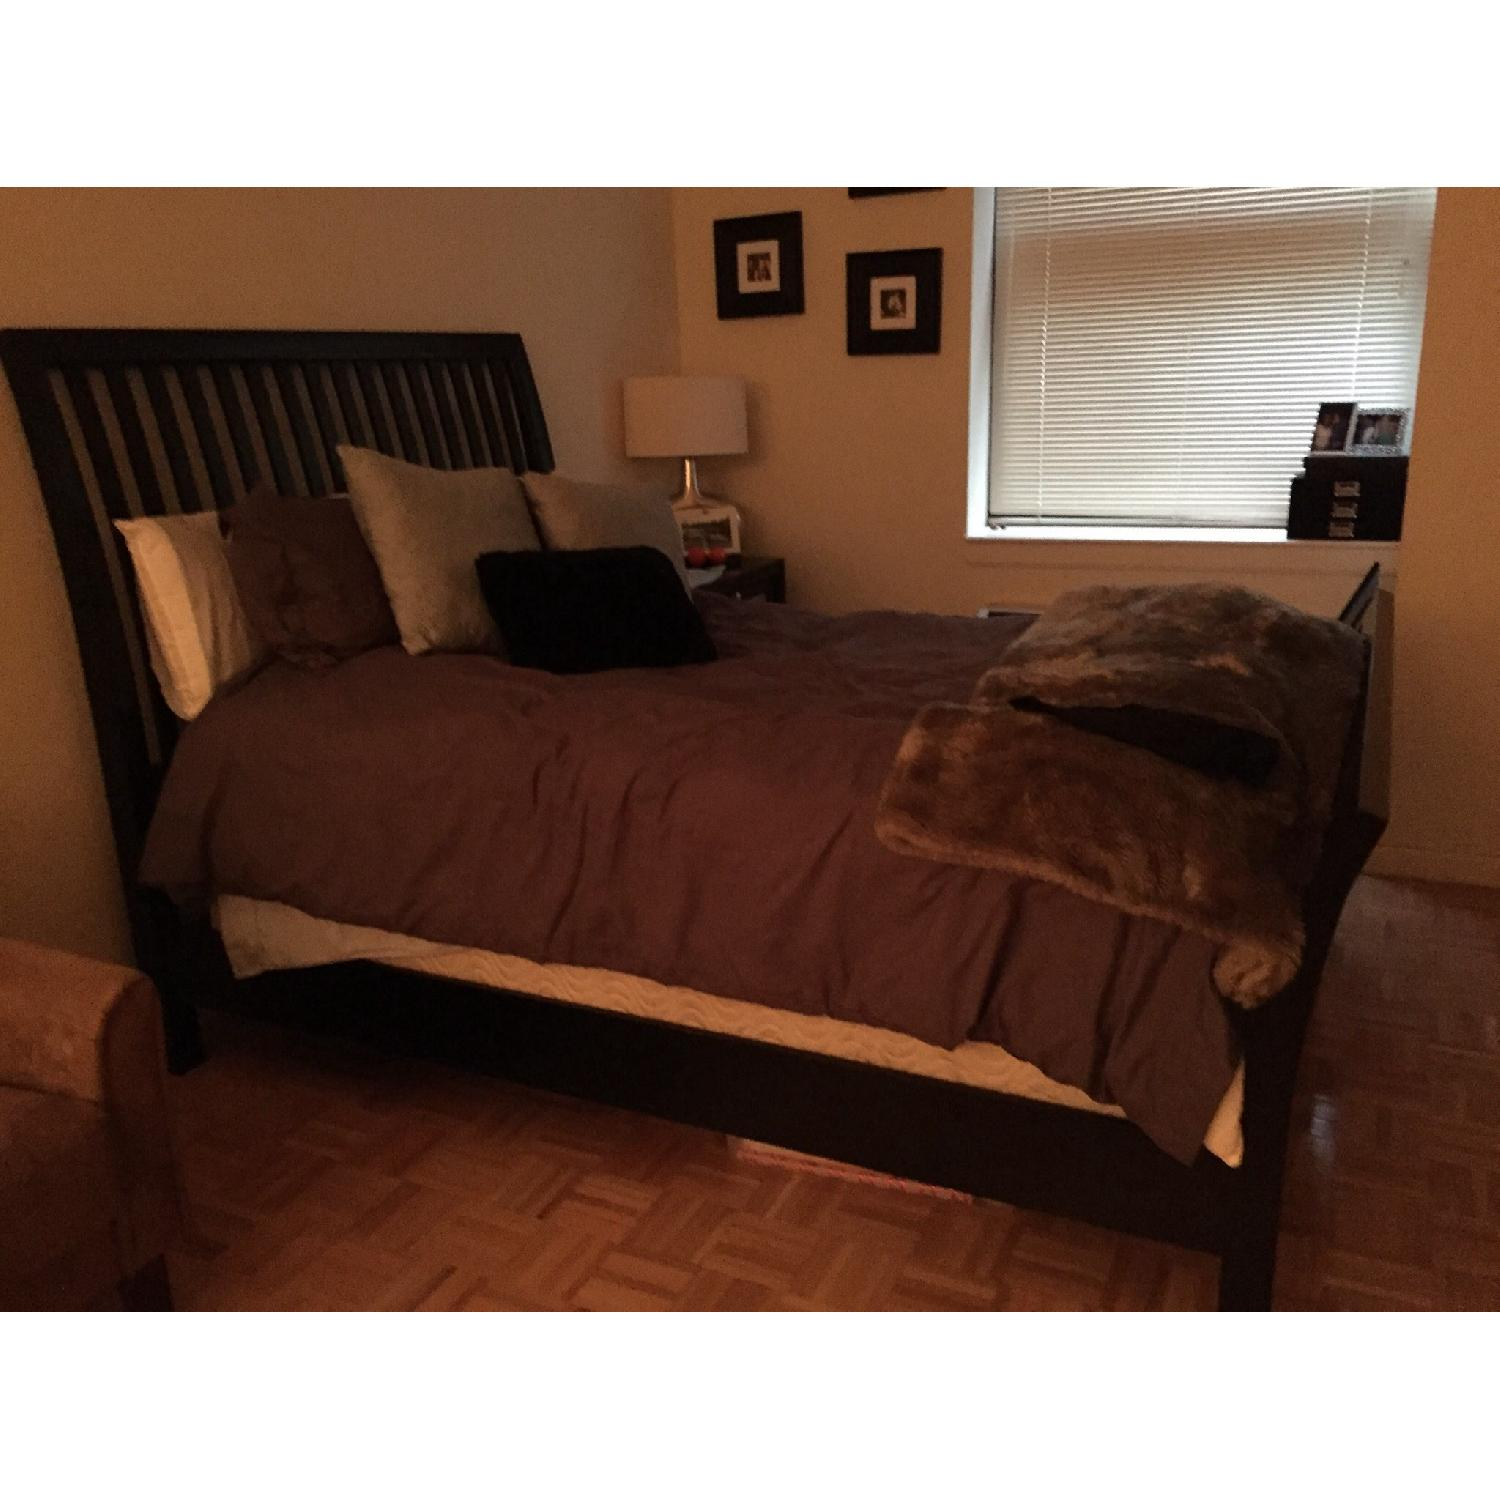 Rooms To Go Queen Size Wood Bed Frame - image-1